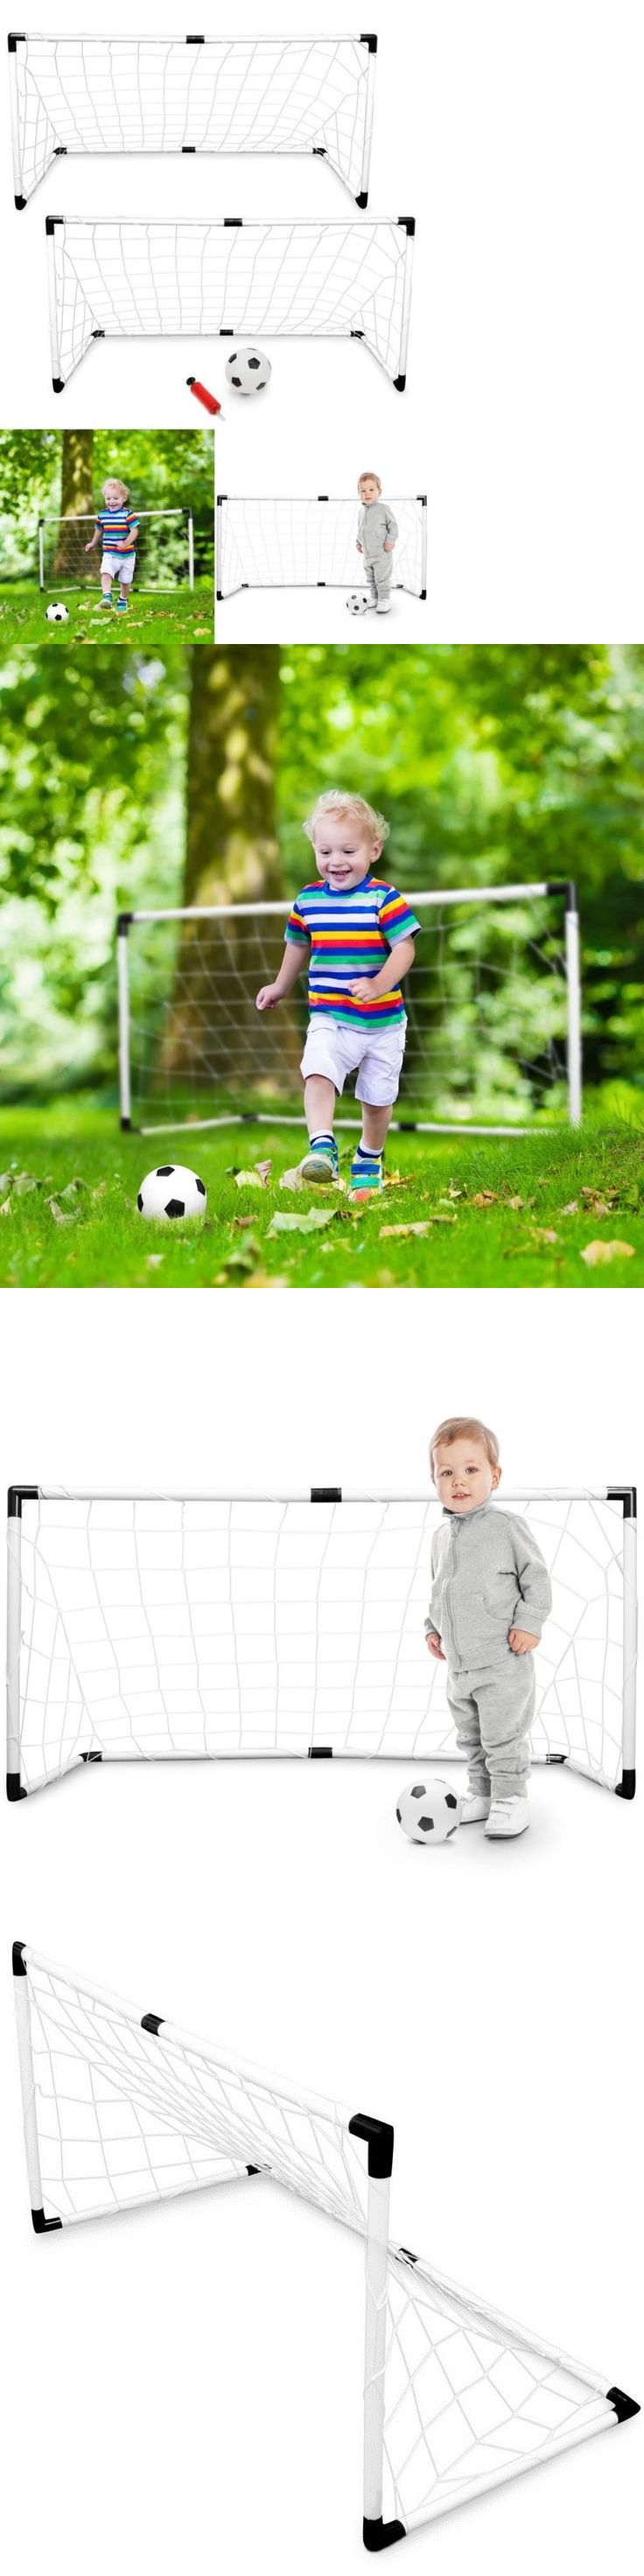 Inspirational Goals and Nets Set Of Soccer Goal For Backyard Toddlers Kids Training Play